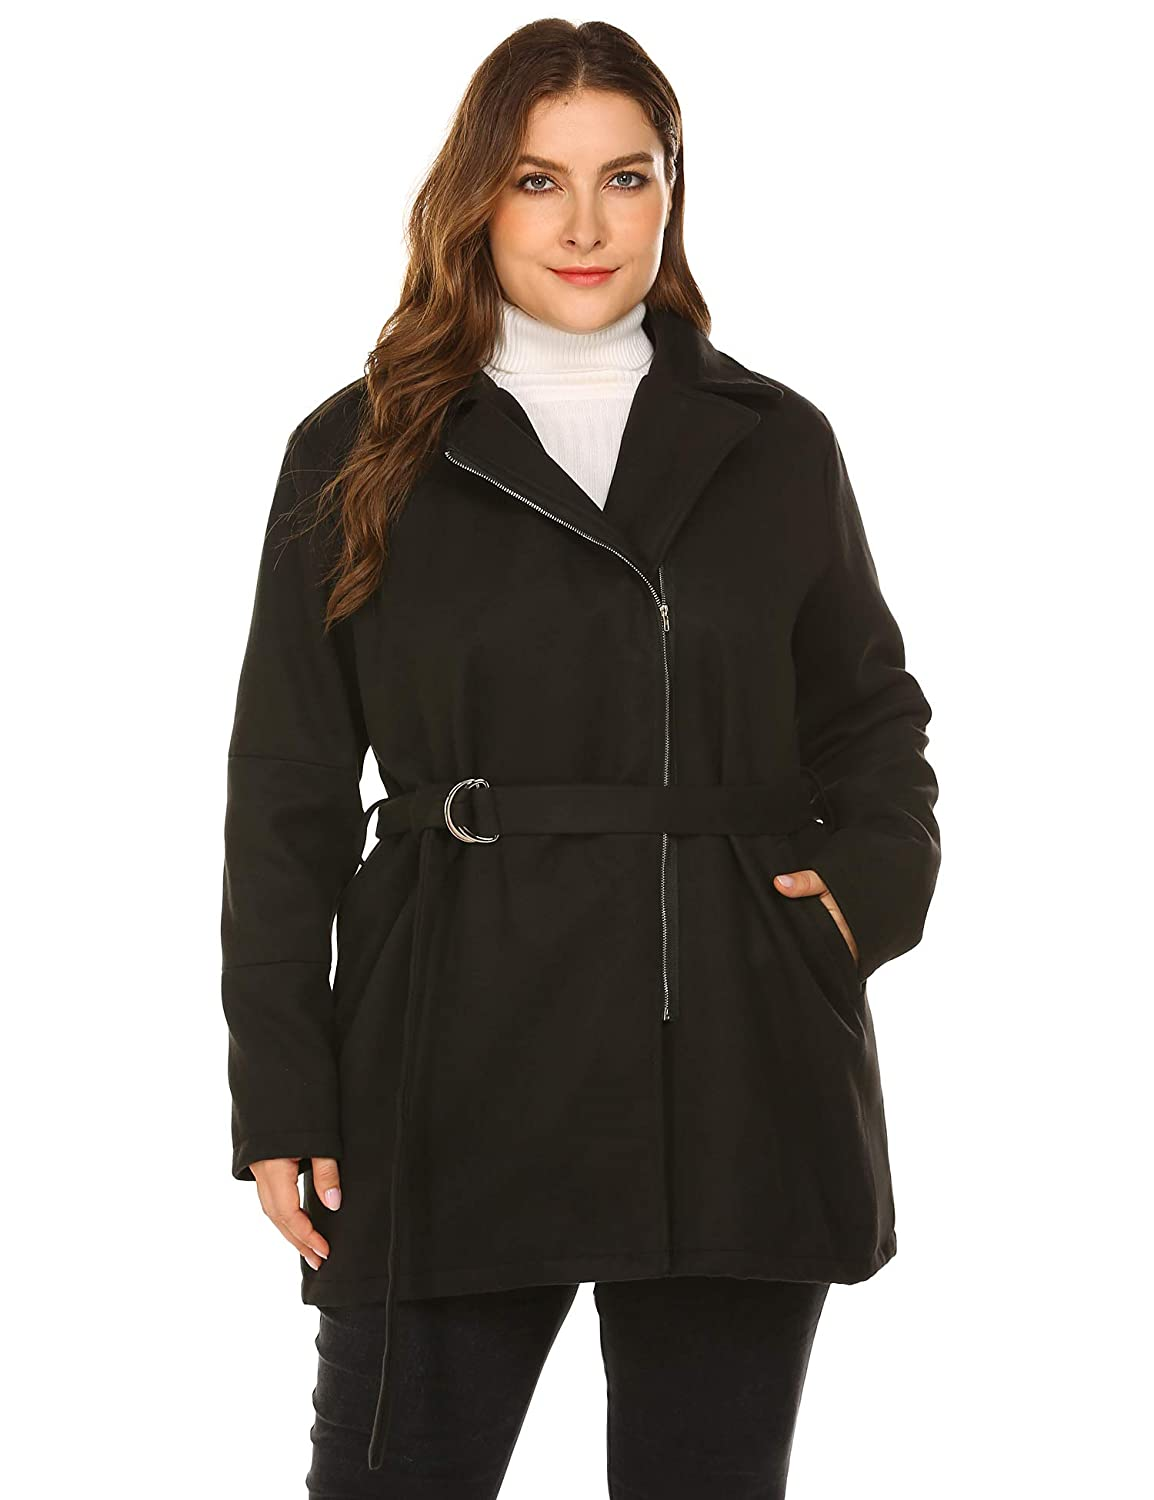 IN'VOLAND Plus Size Women Woolen Coat Zipper Jacket Lined Trench Coat with Belt (16W-22W) AMH020957